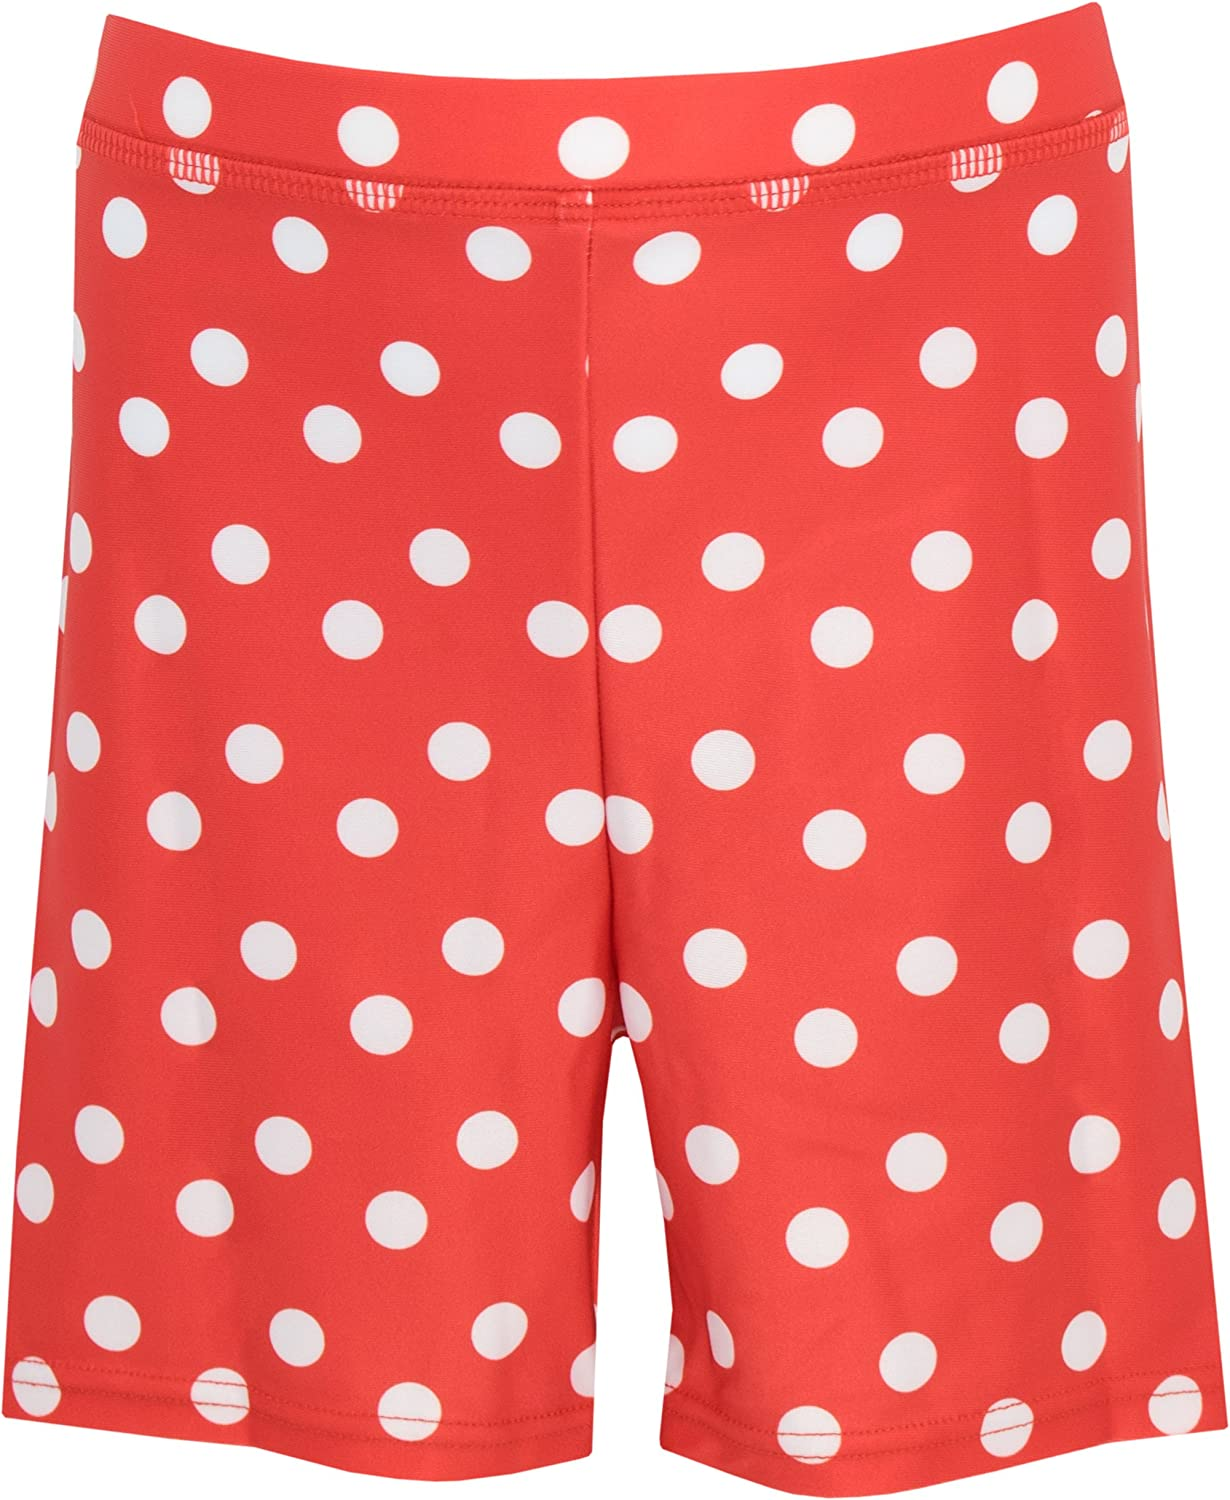 Disney Girls Minnie Mouse Swim Set Ages 3 Months to 8 Years